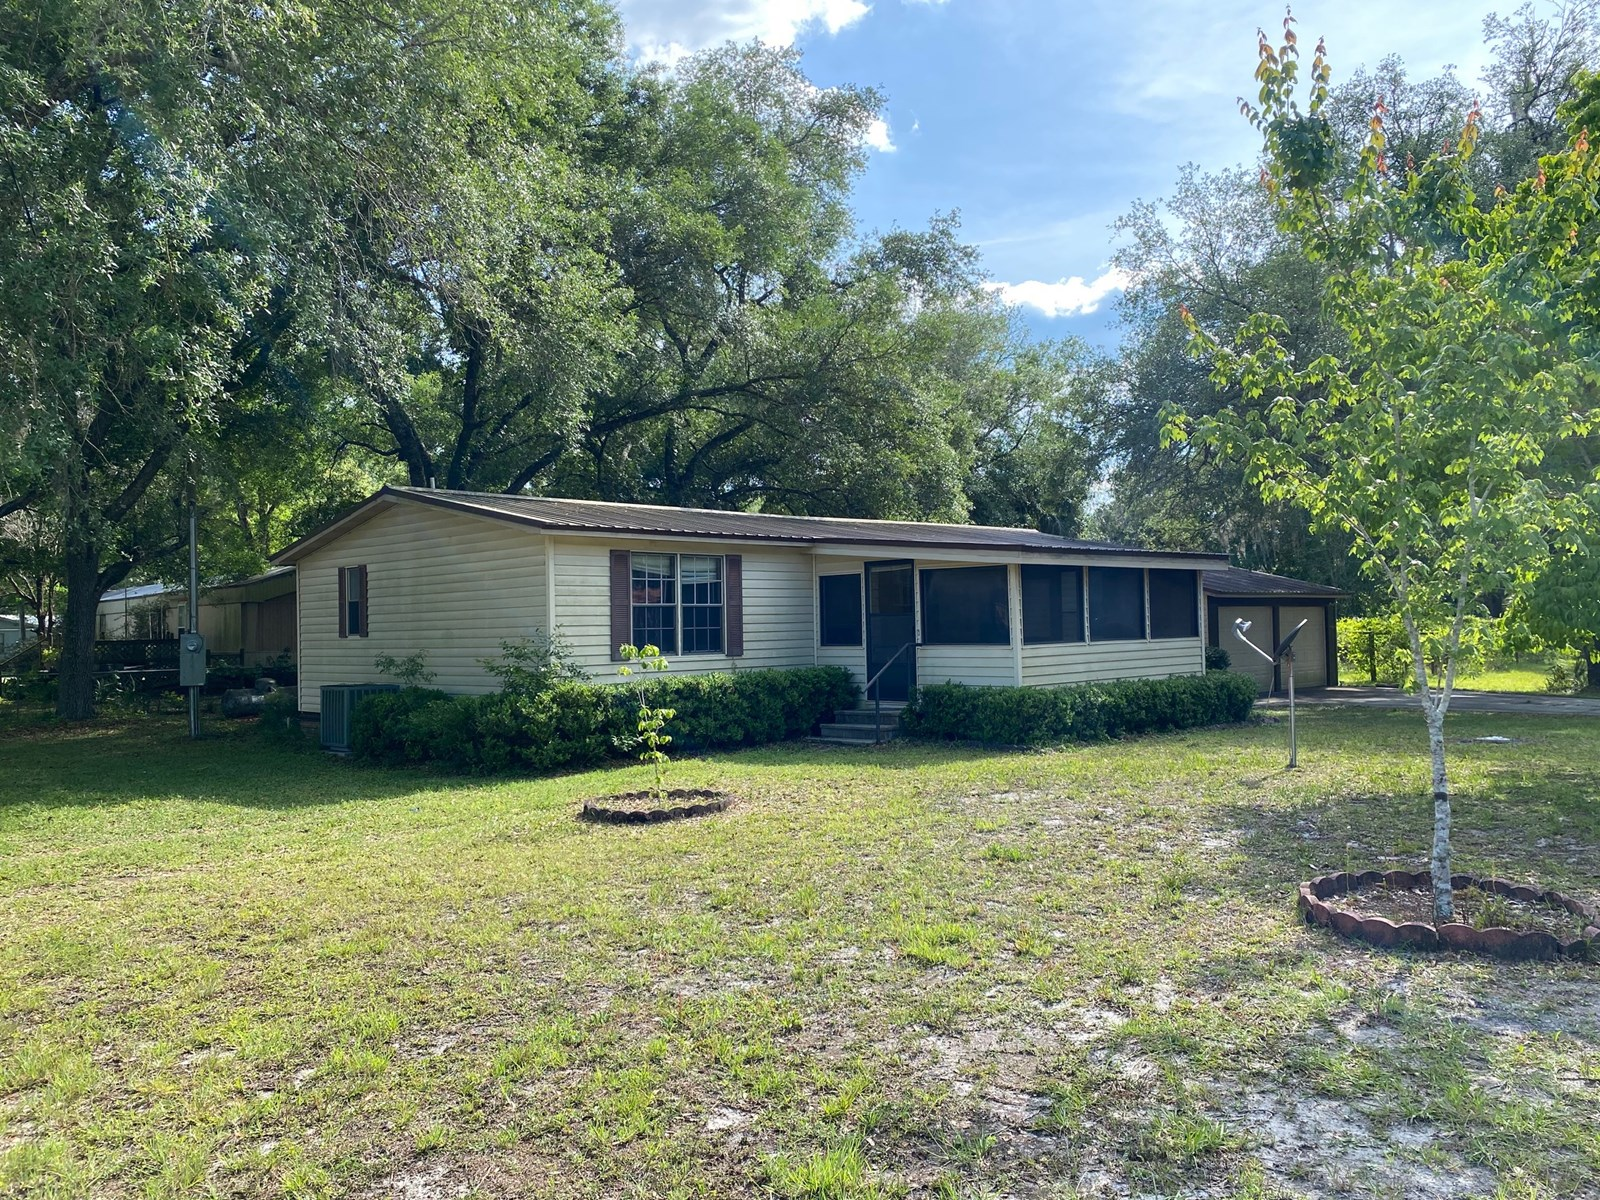 3/2 MBHM inside the Mayo city Limits for $89,000!!!